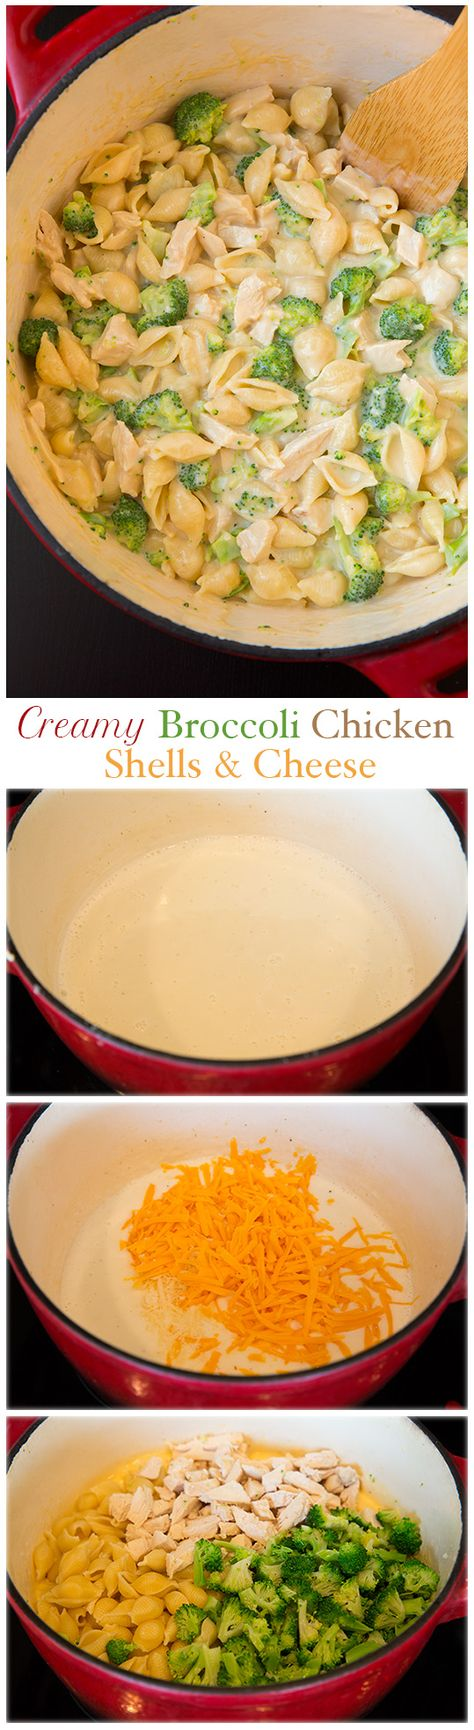 Creamy Broccoli Chicken Shells and Cheese - this is made lighter yet it's so incredibly DELICIOUS!! Finally a meal the whole family can agree on.